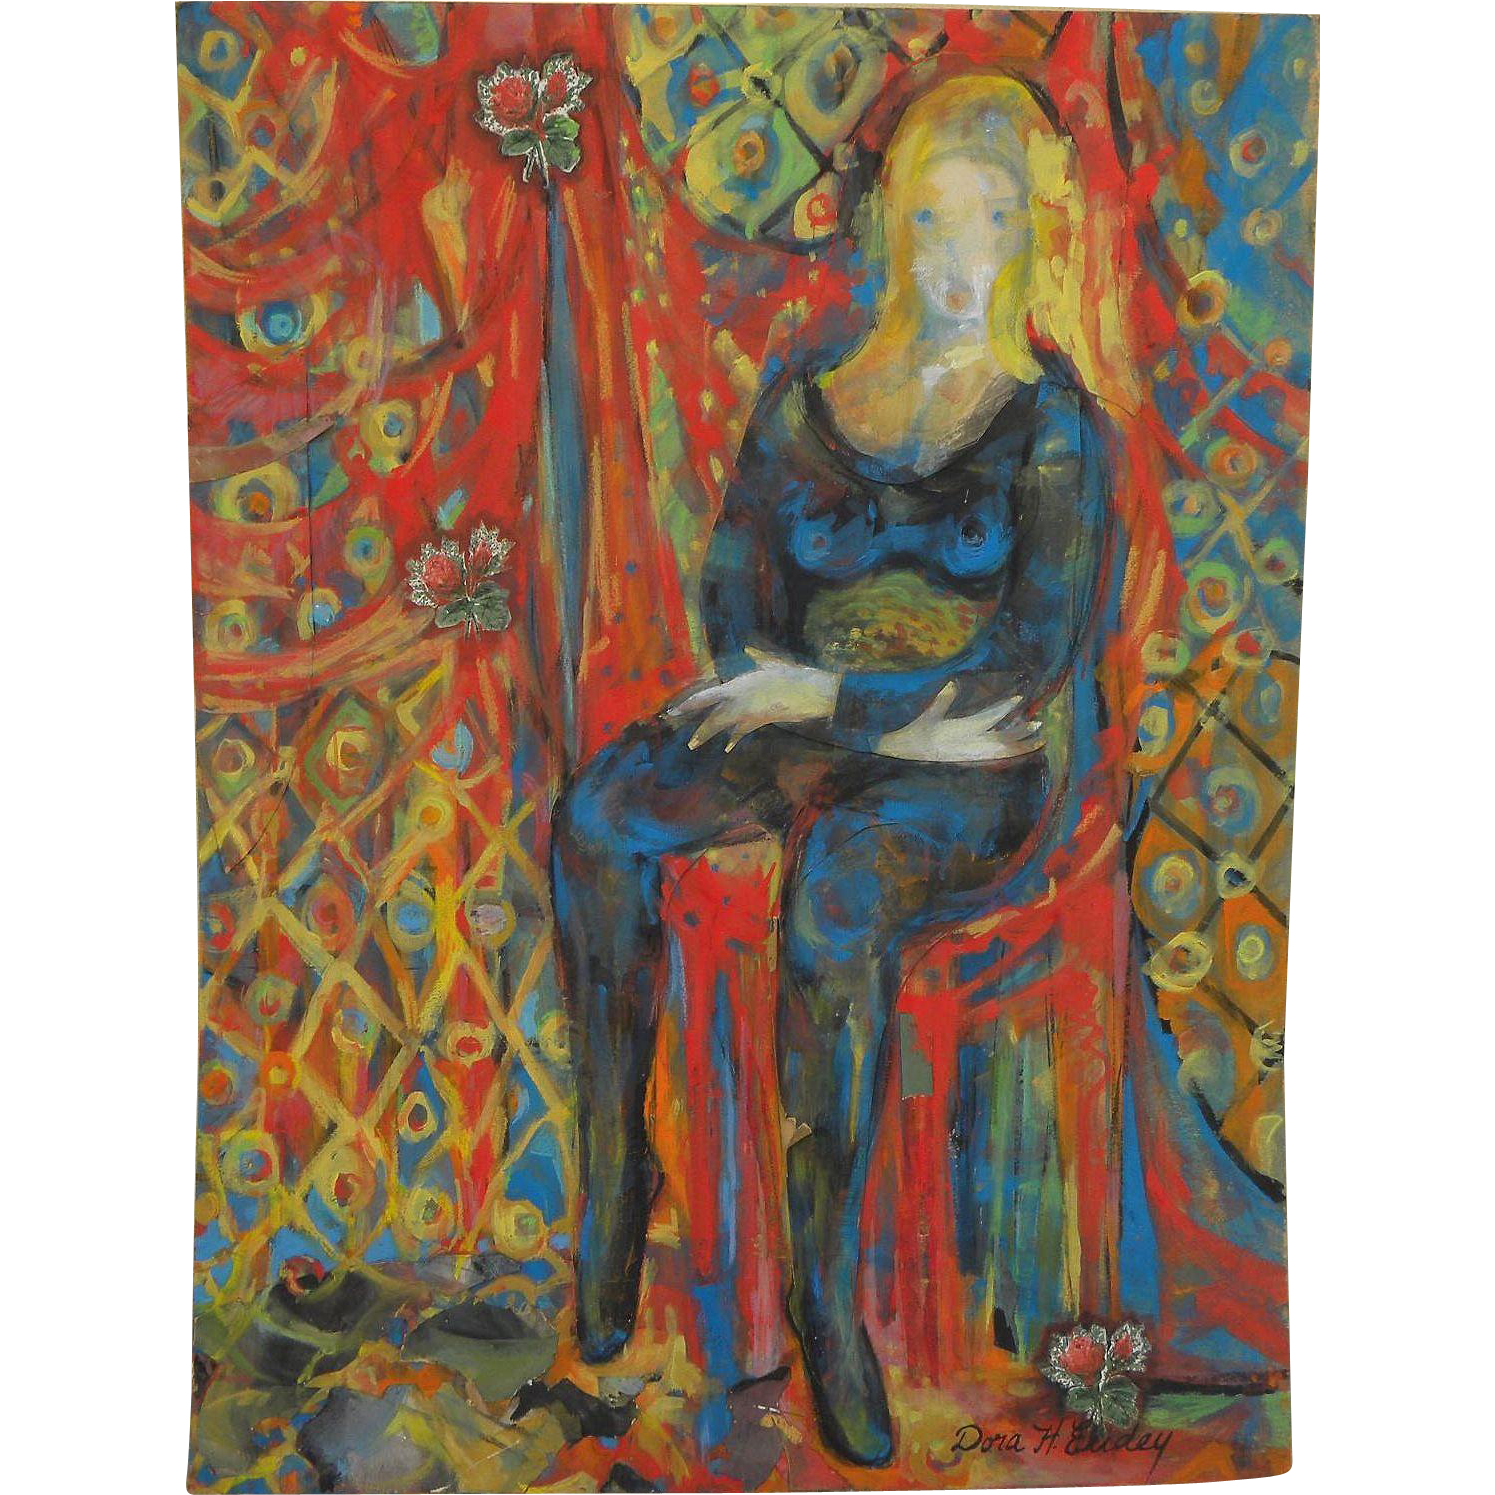 DORA HIGGINS EUDEY (1909-2006) colorful figural painting by listed California artist